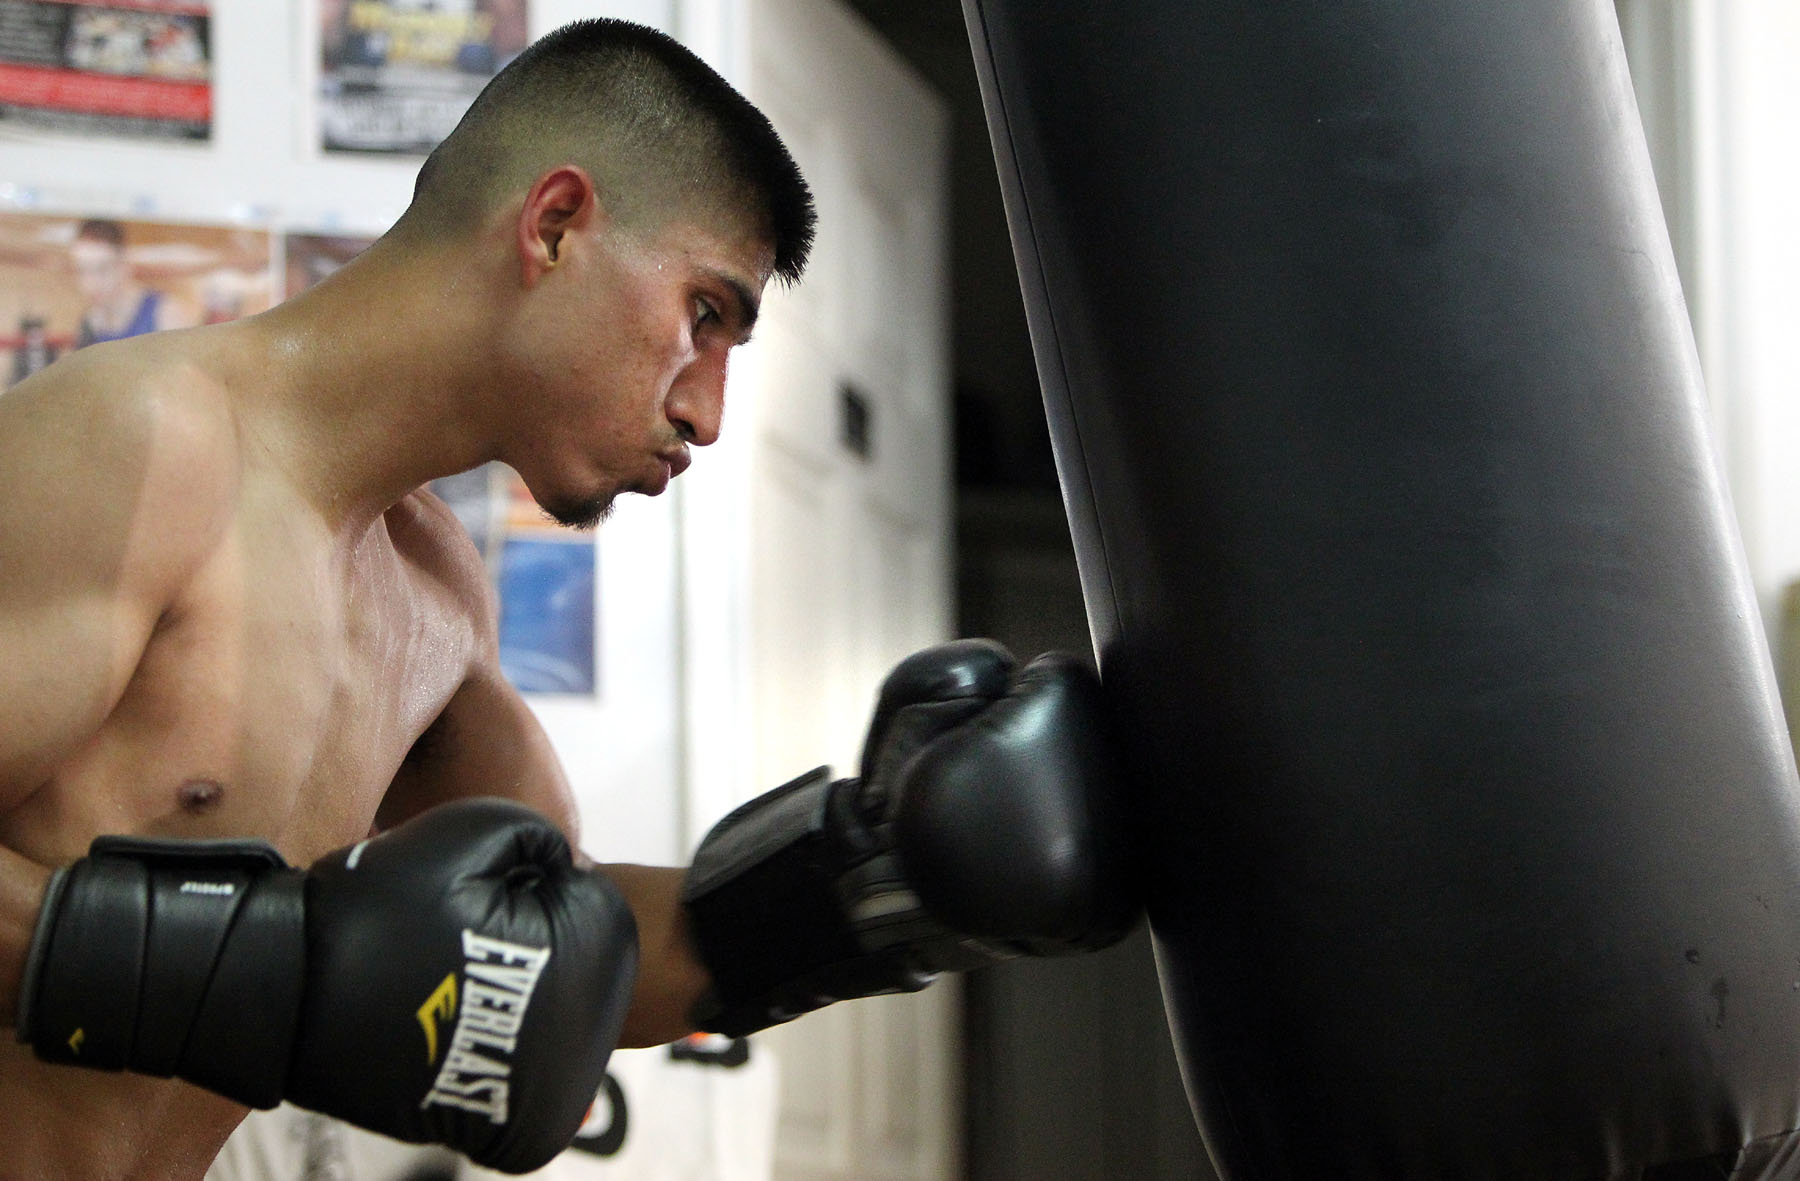 Mikey Garcia private workout 130611 004a - Mikey Garcia: A Step Towards Greatness